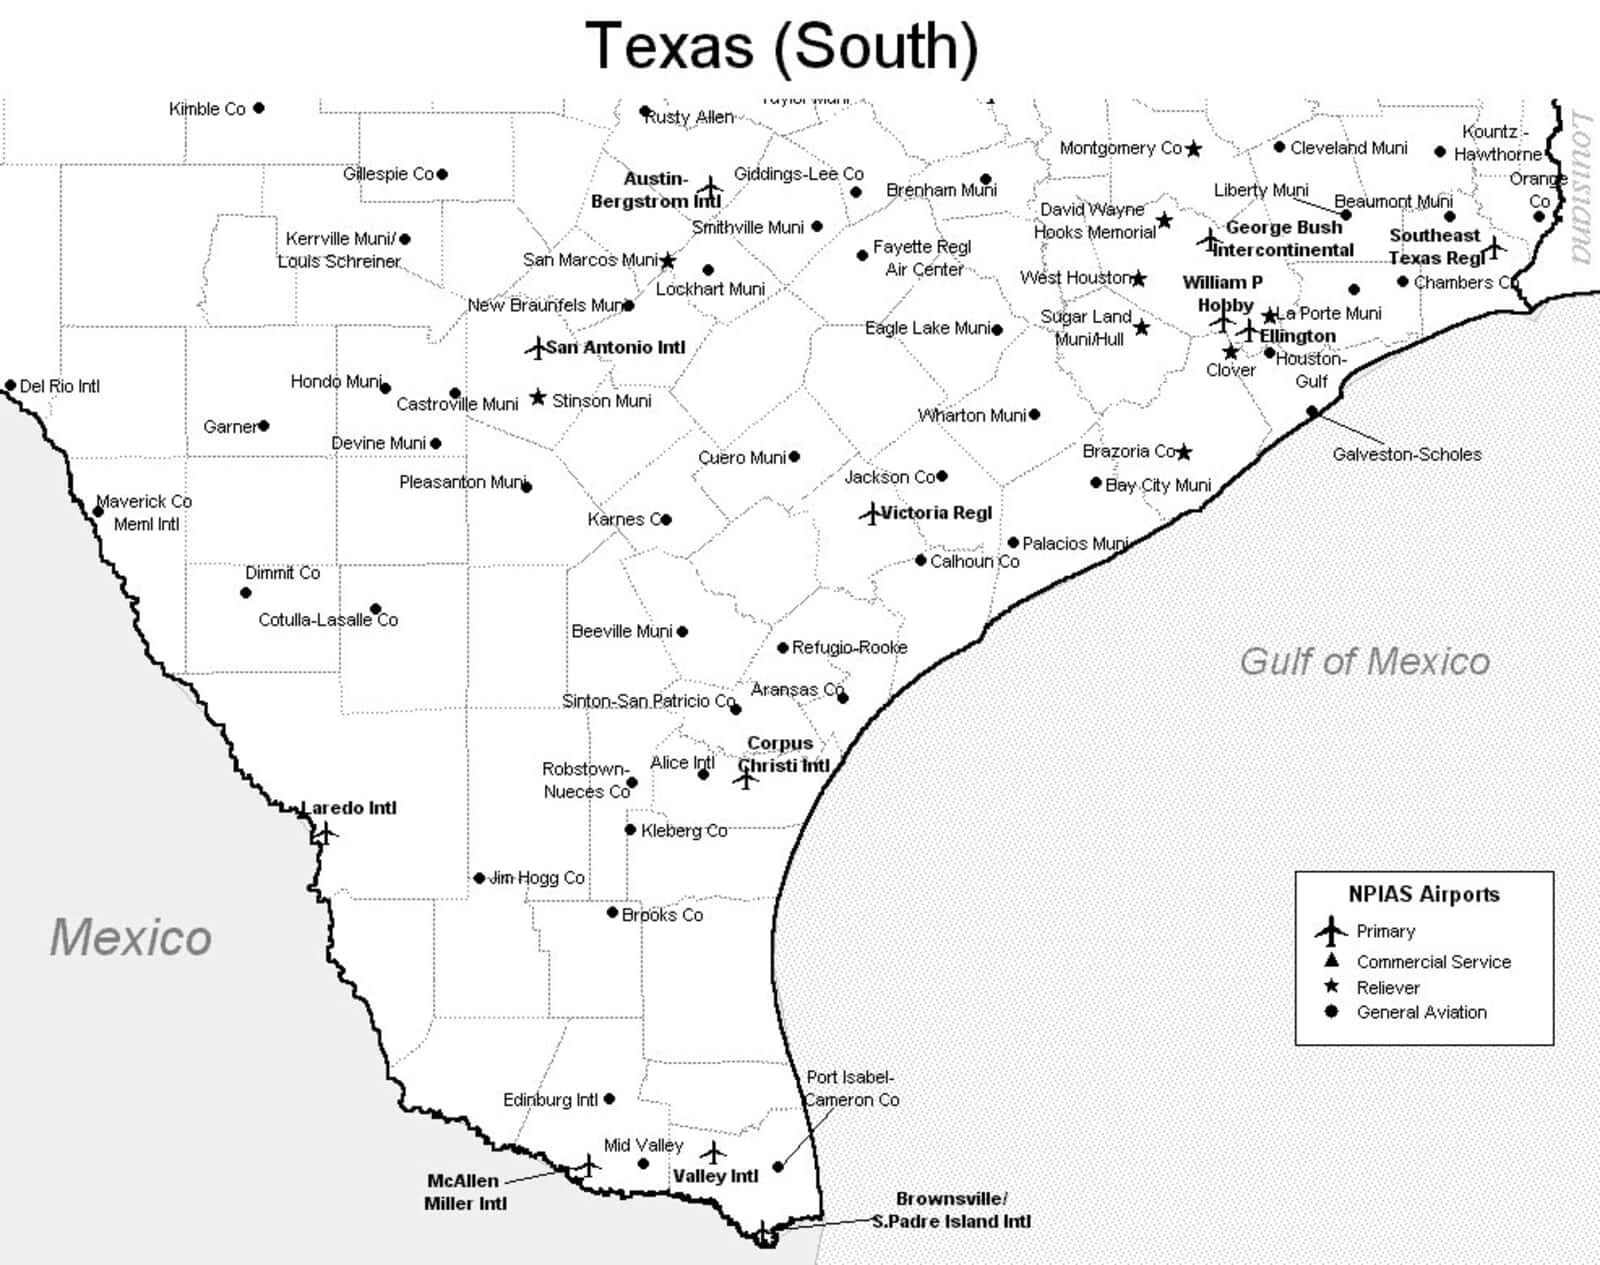 South Texas Airport Map South Texas Airports